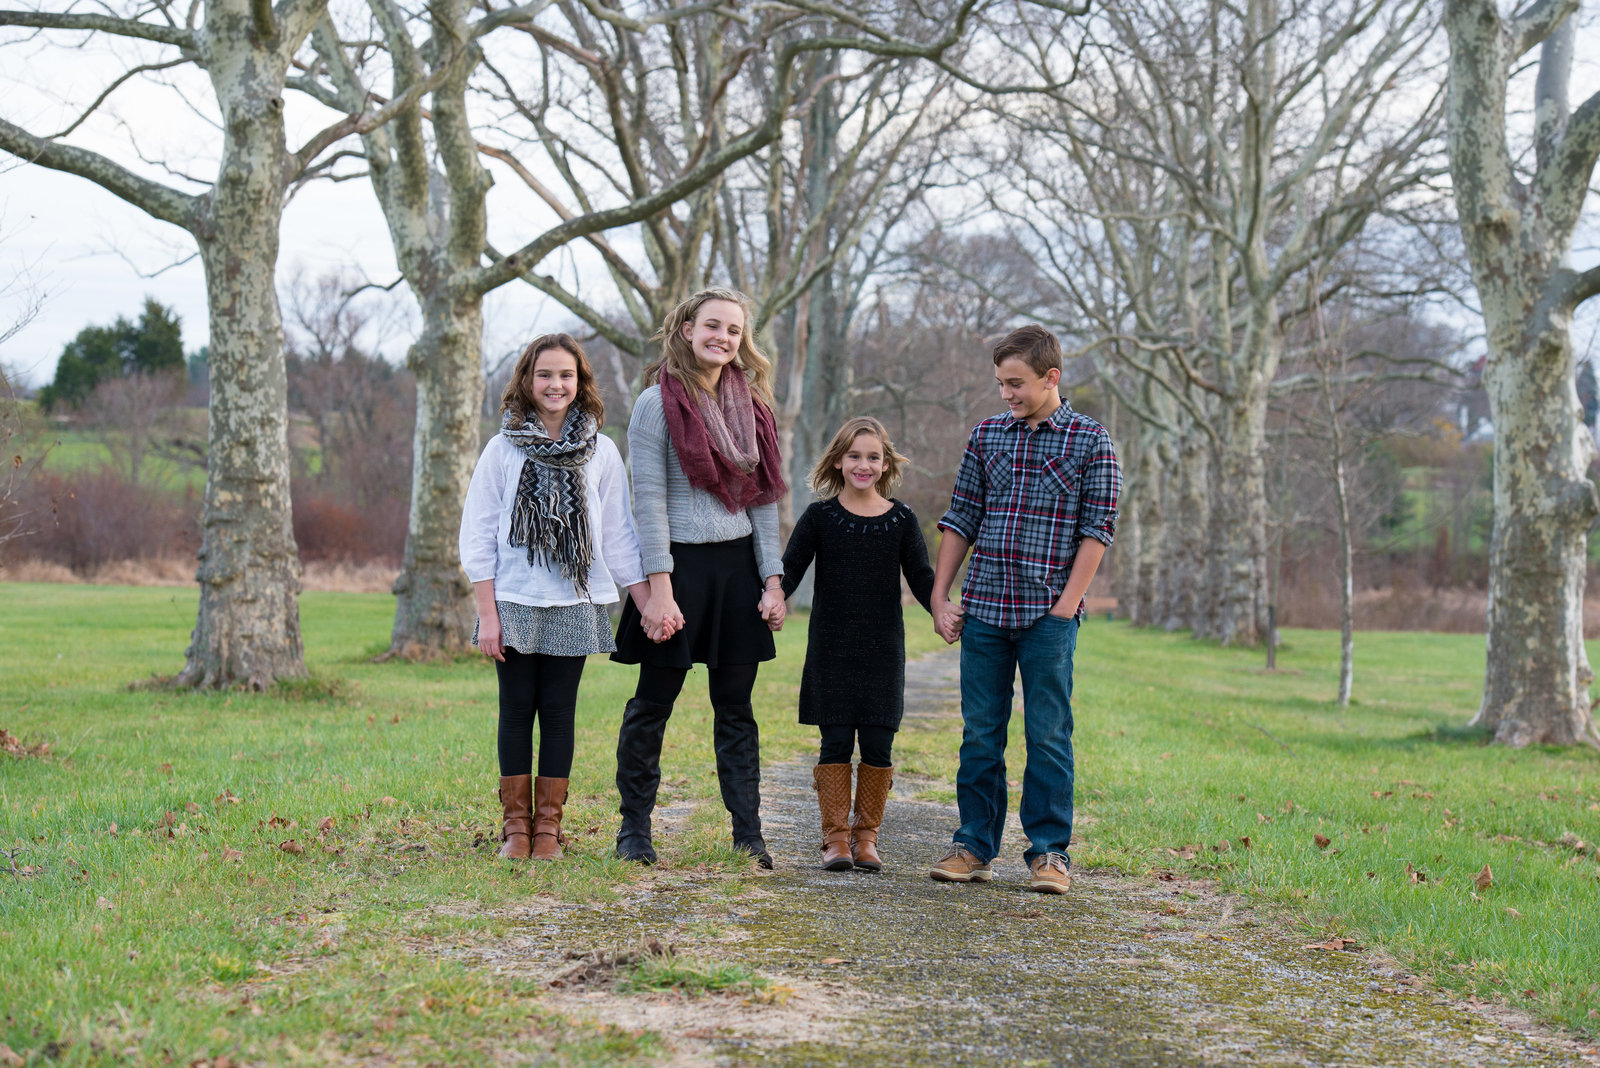 West Chester PA Photographer, Fall Family Portraits